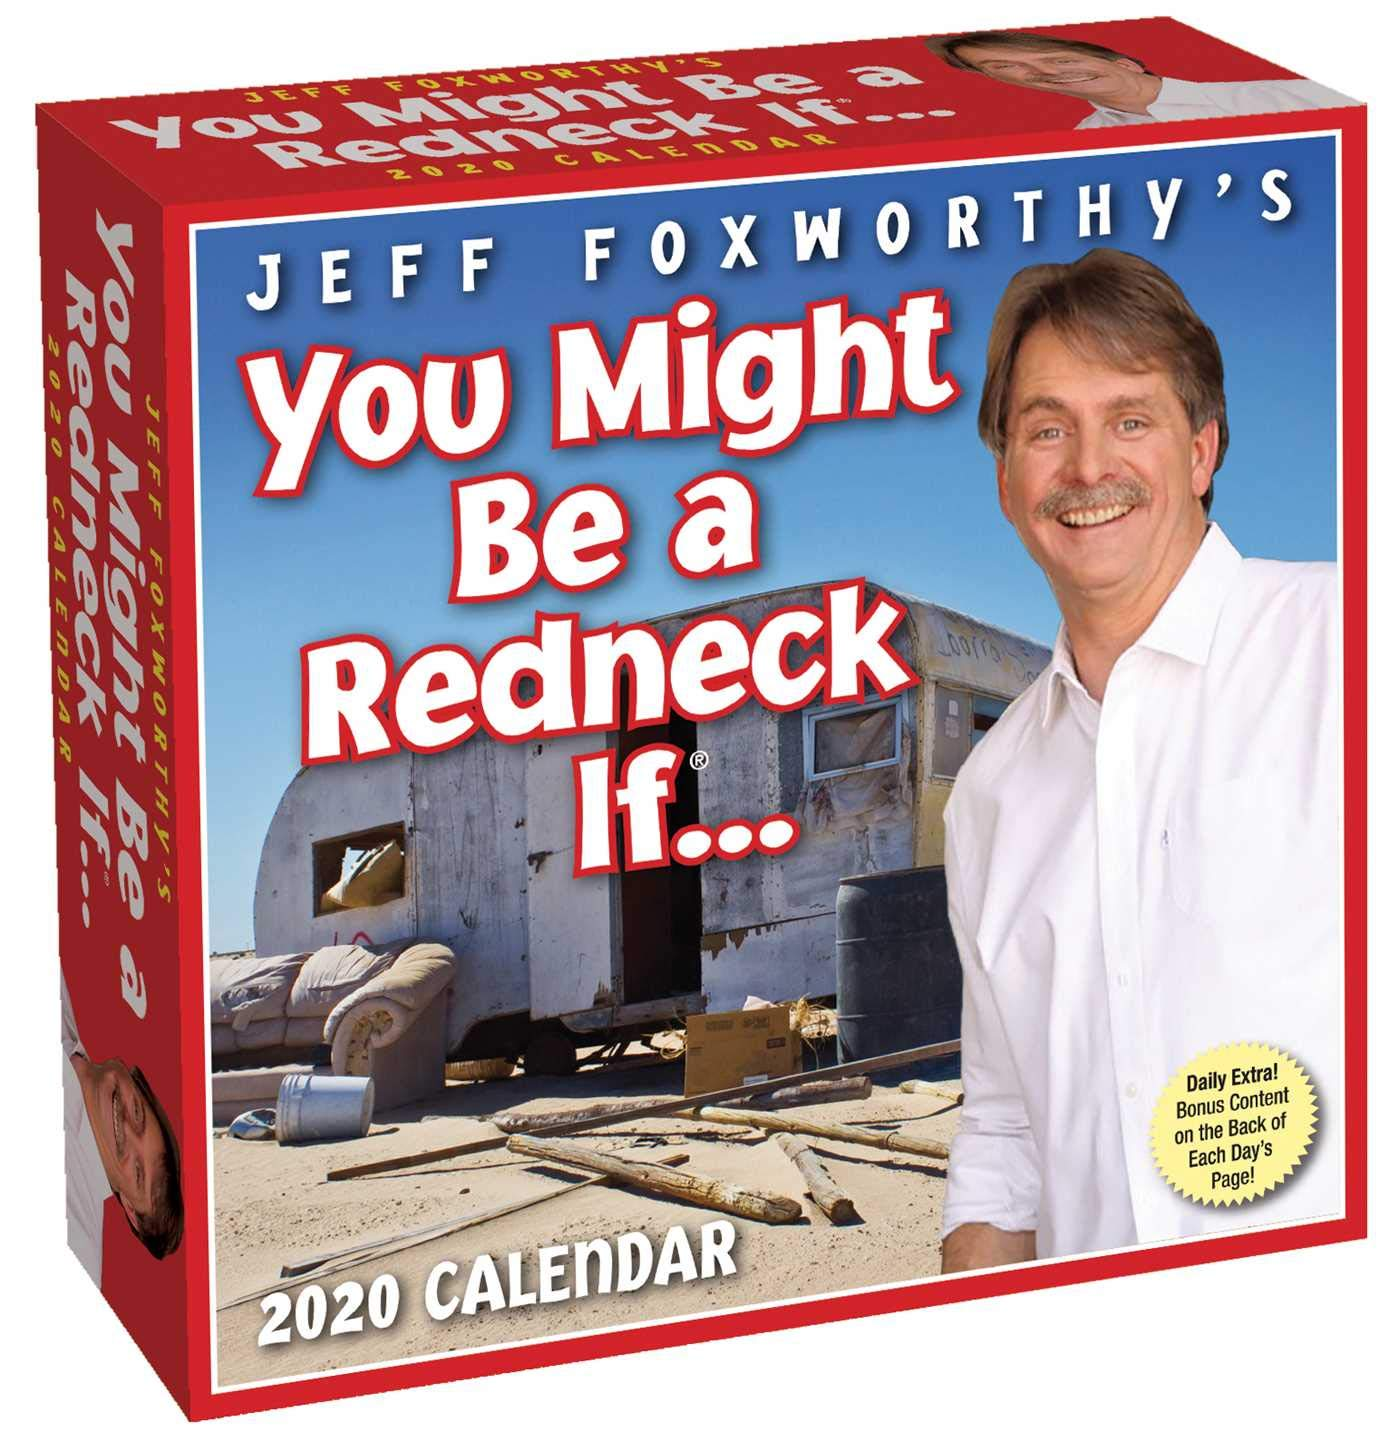 Ccc Calendar 2020 Jeff Foxworthy's You Might Be A Redneck If 2020 Day to Day